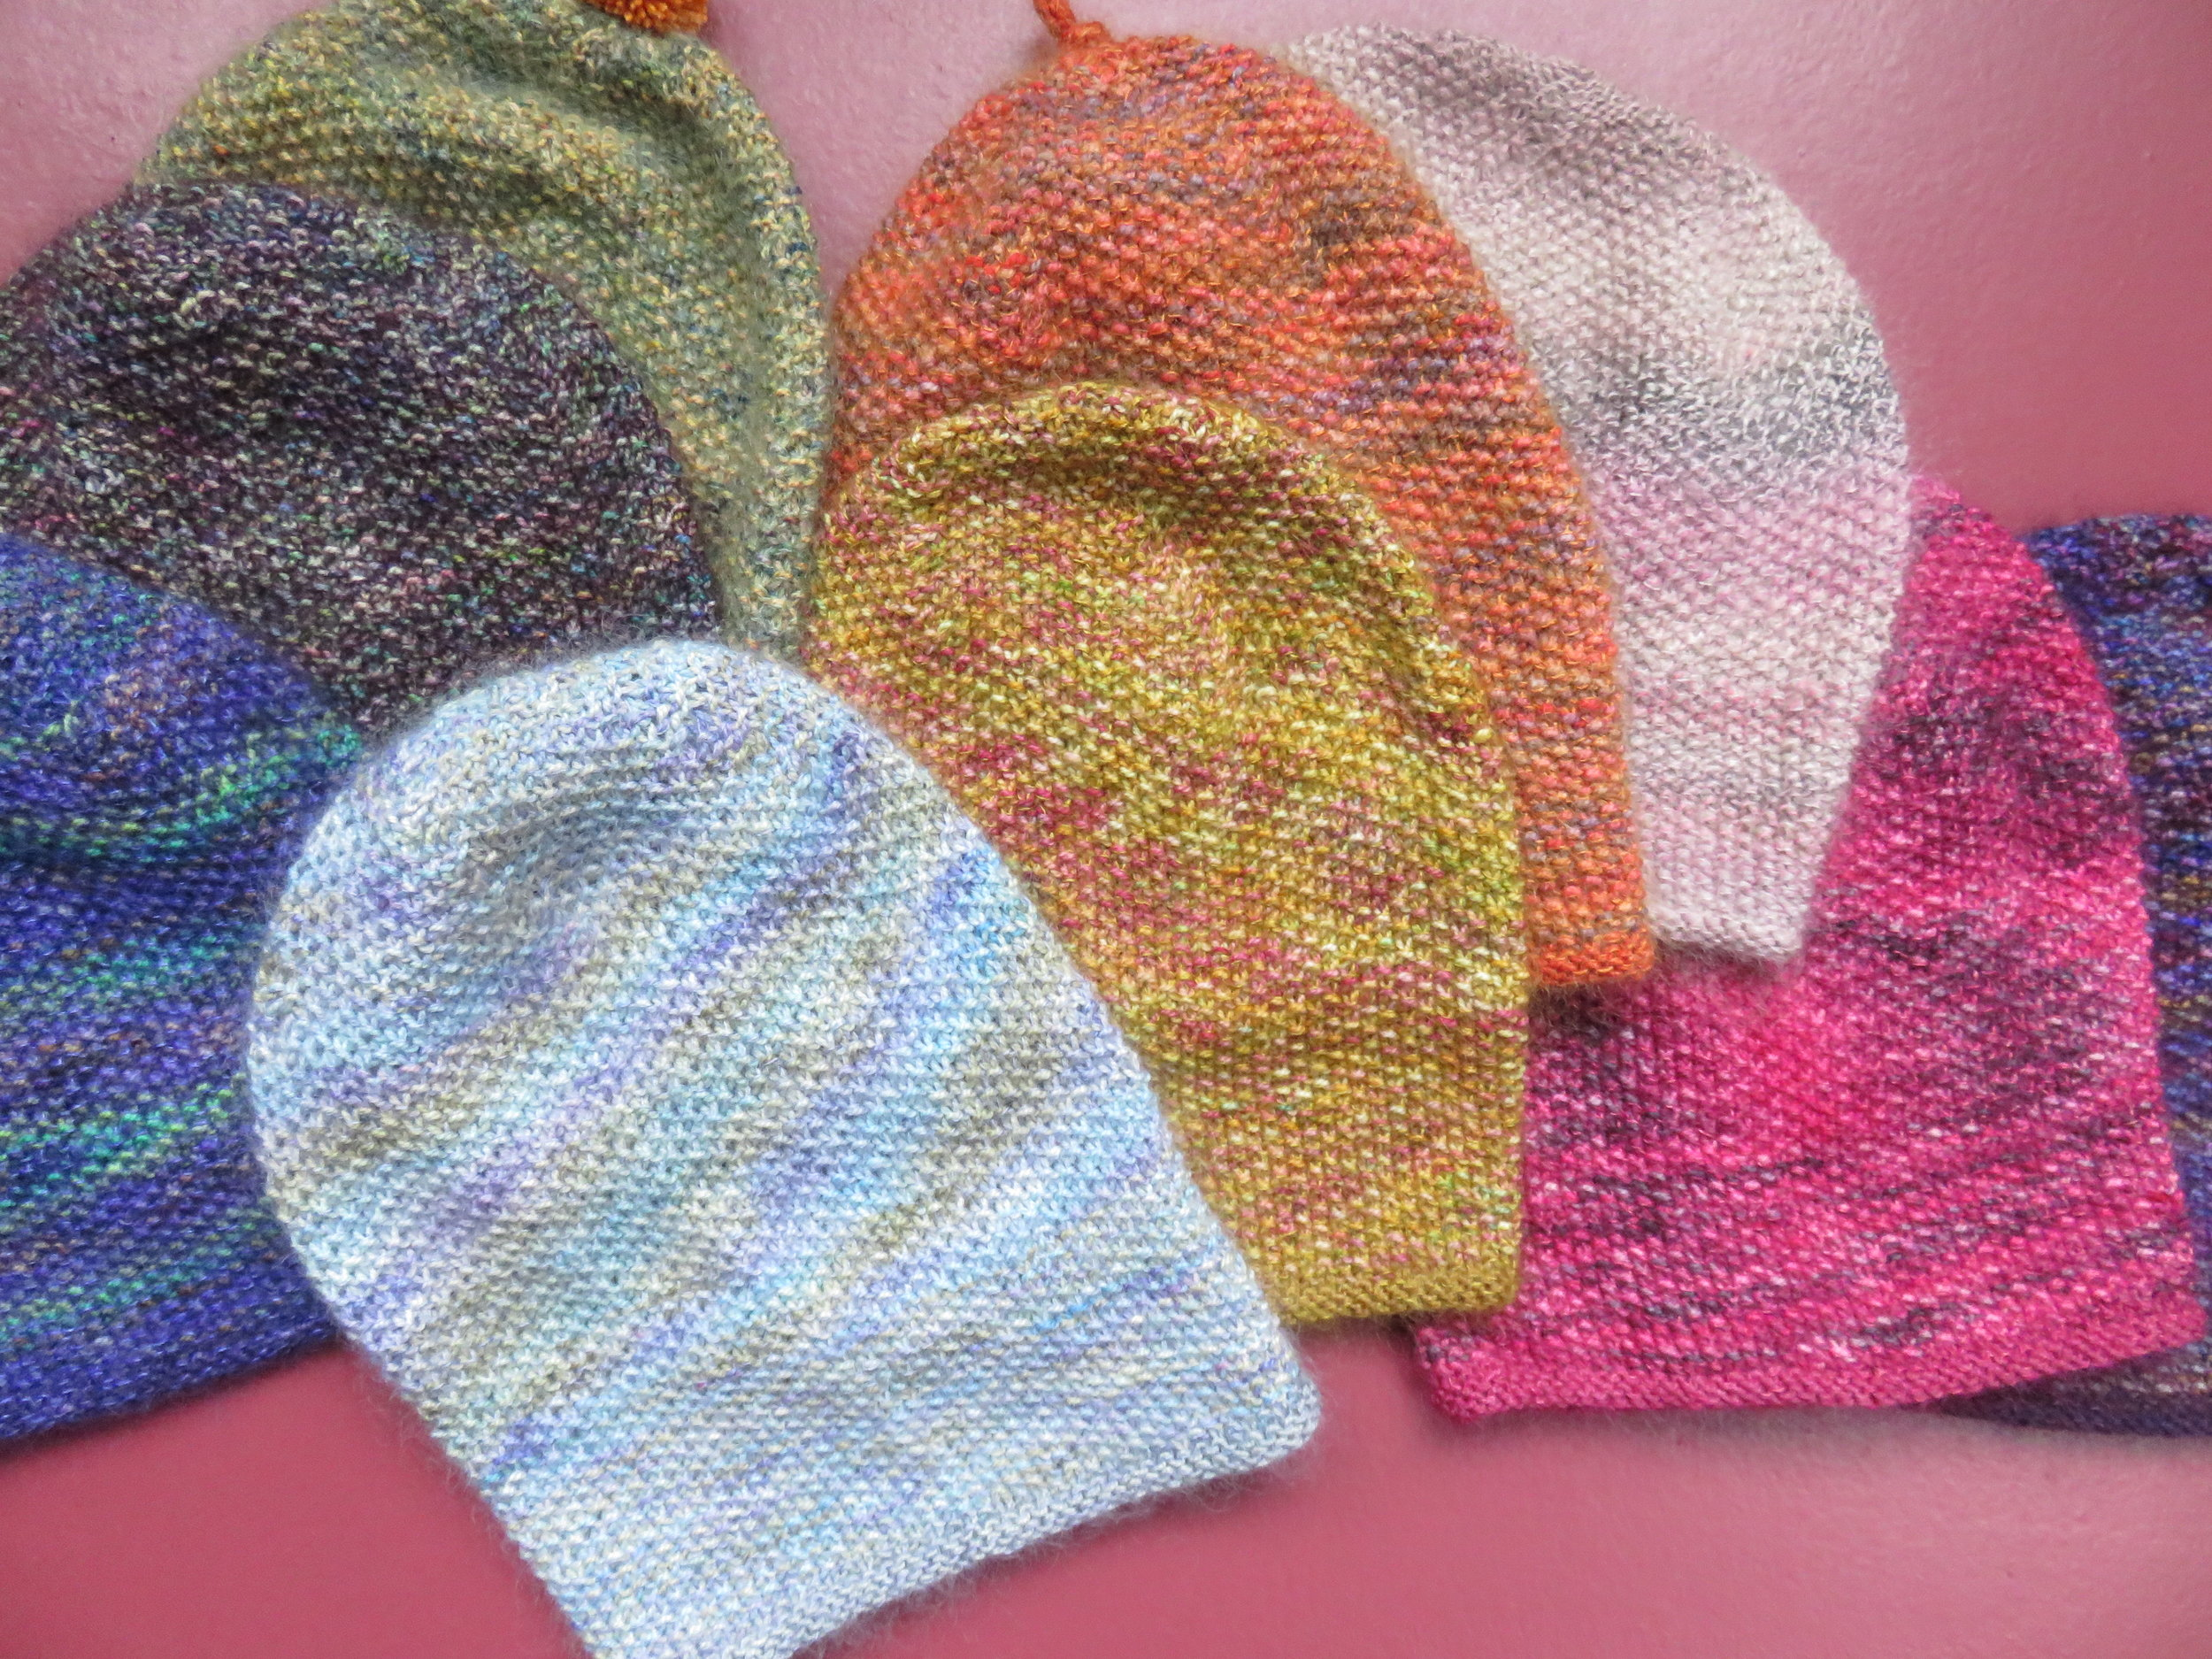 Jan - Hats using KPPPM and Canadian Mohair